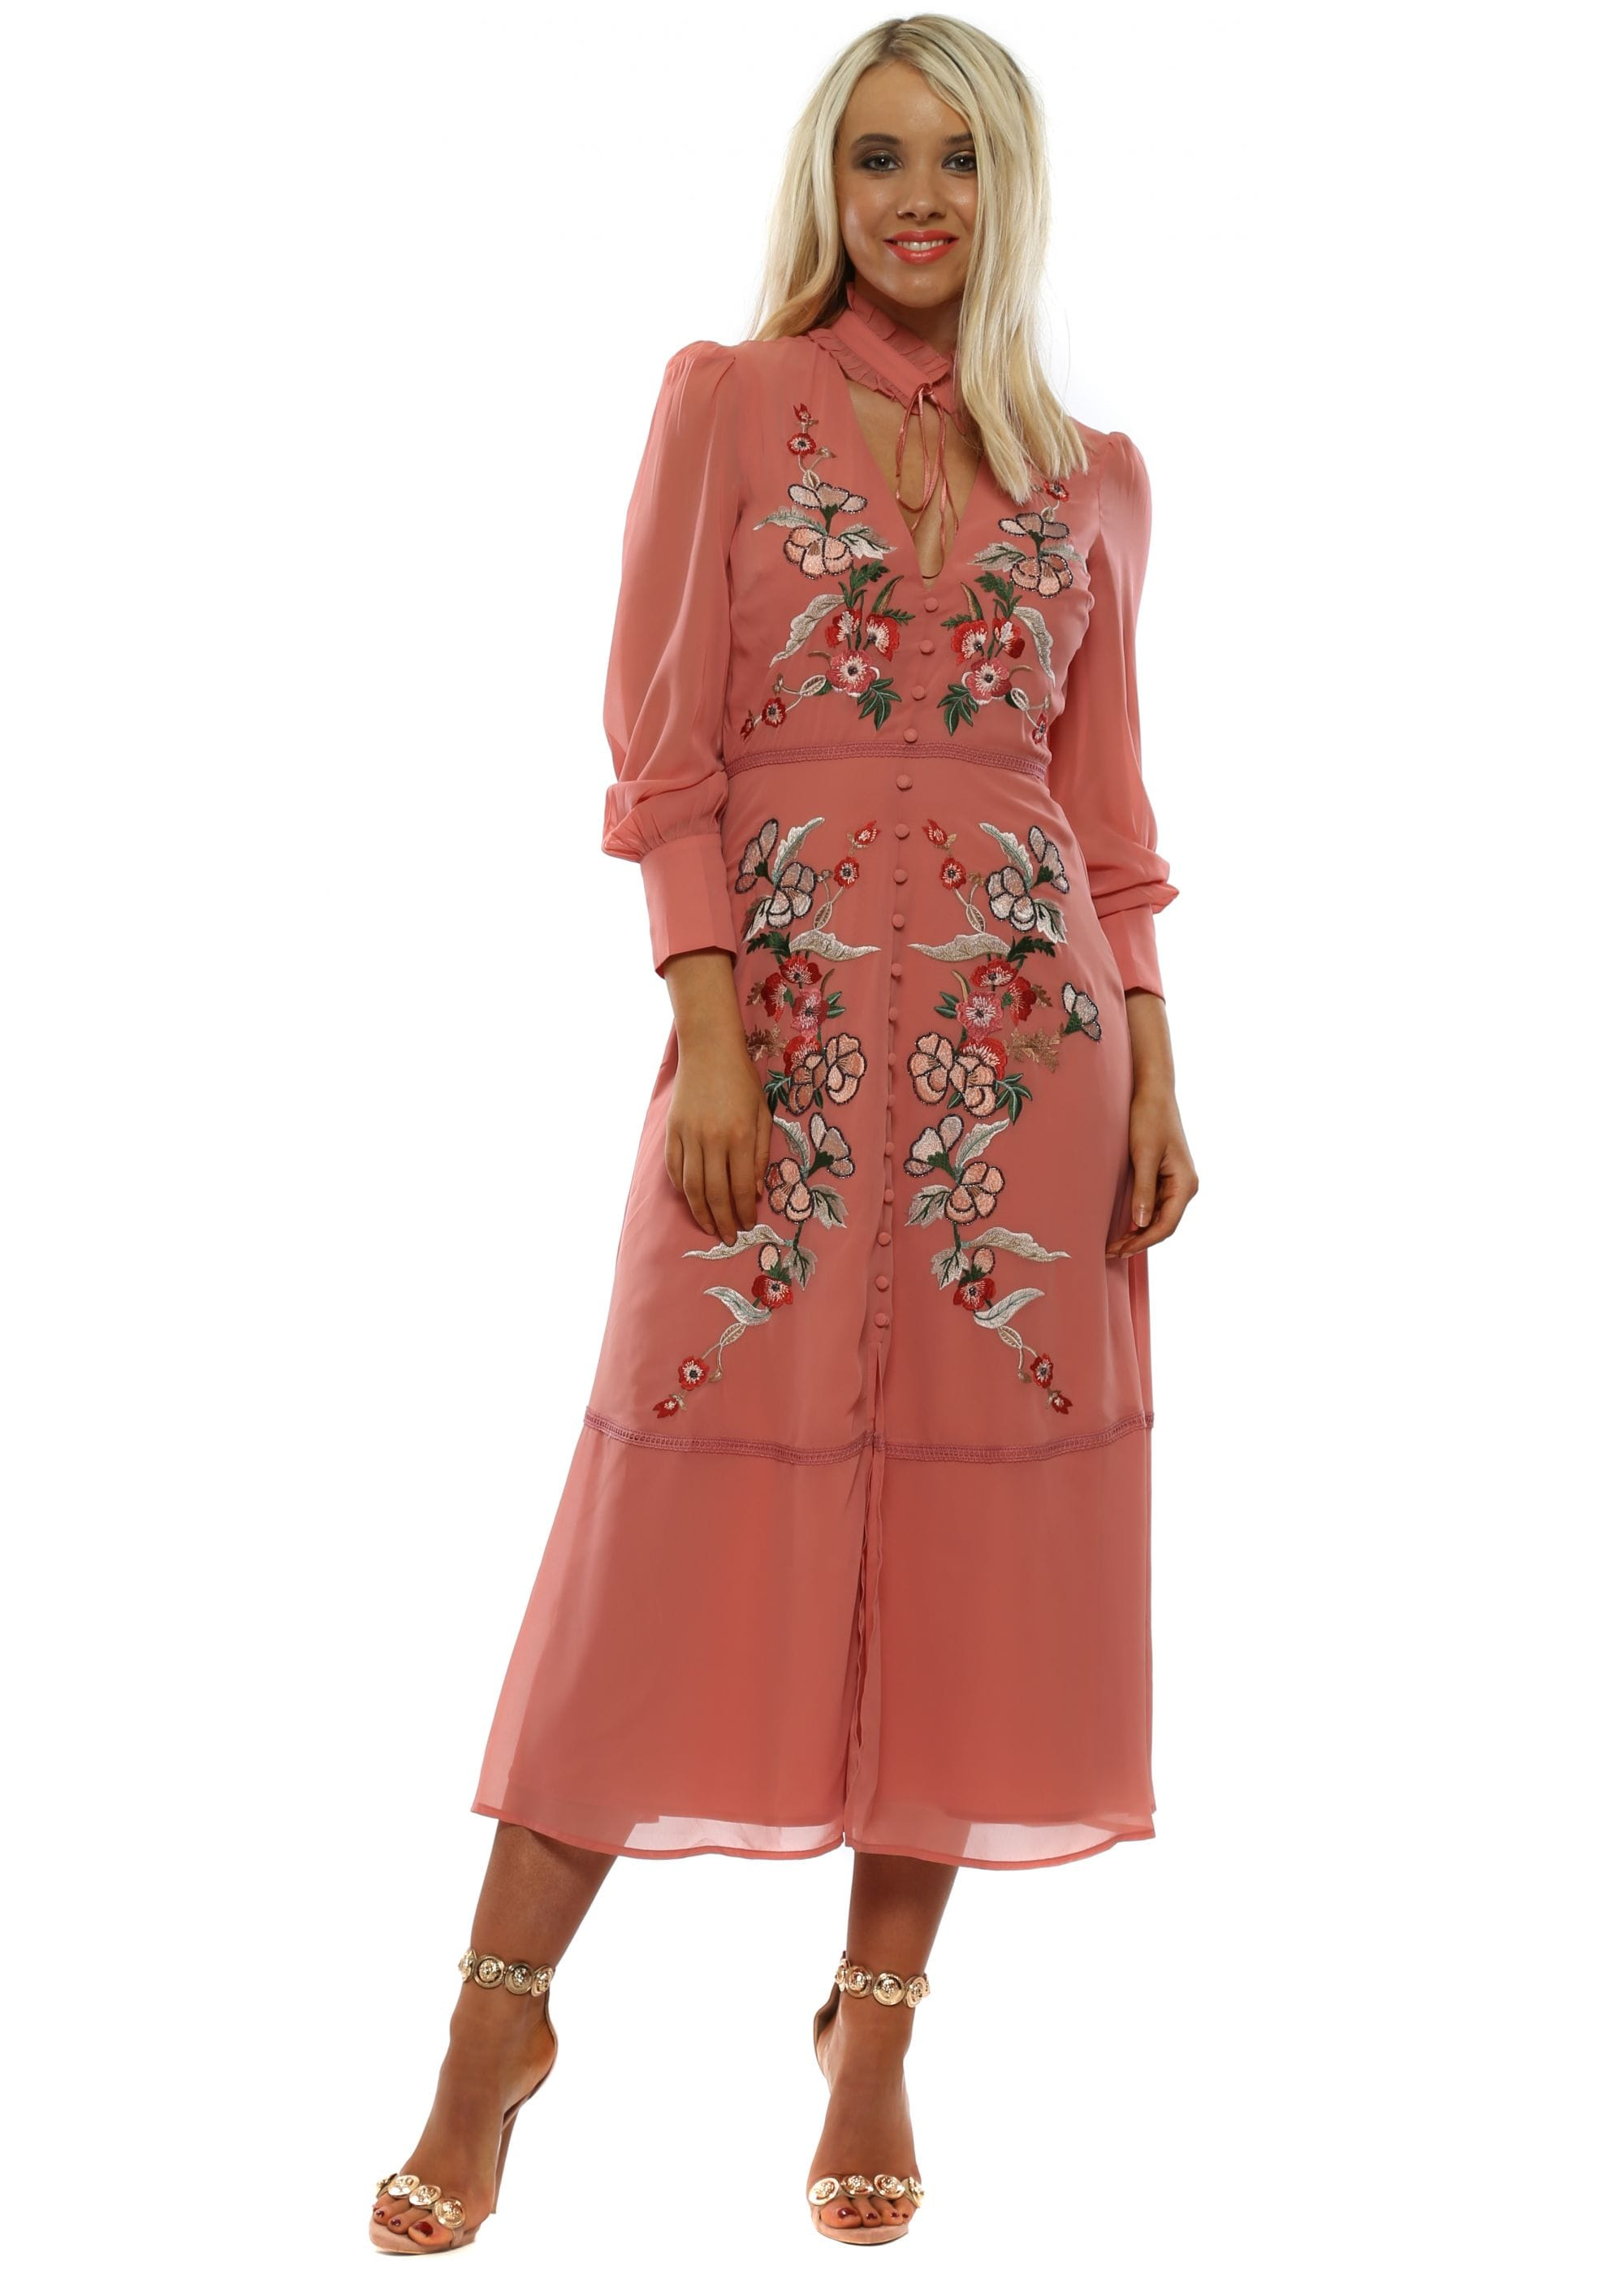 c6bdbdf5c0de Coral Embroidered Long Sleeve Midi Dress